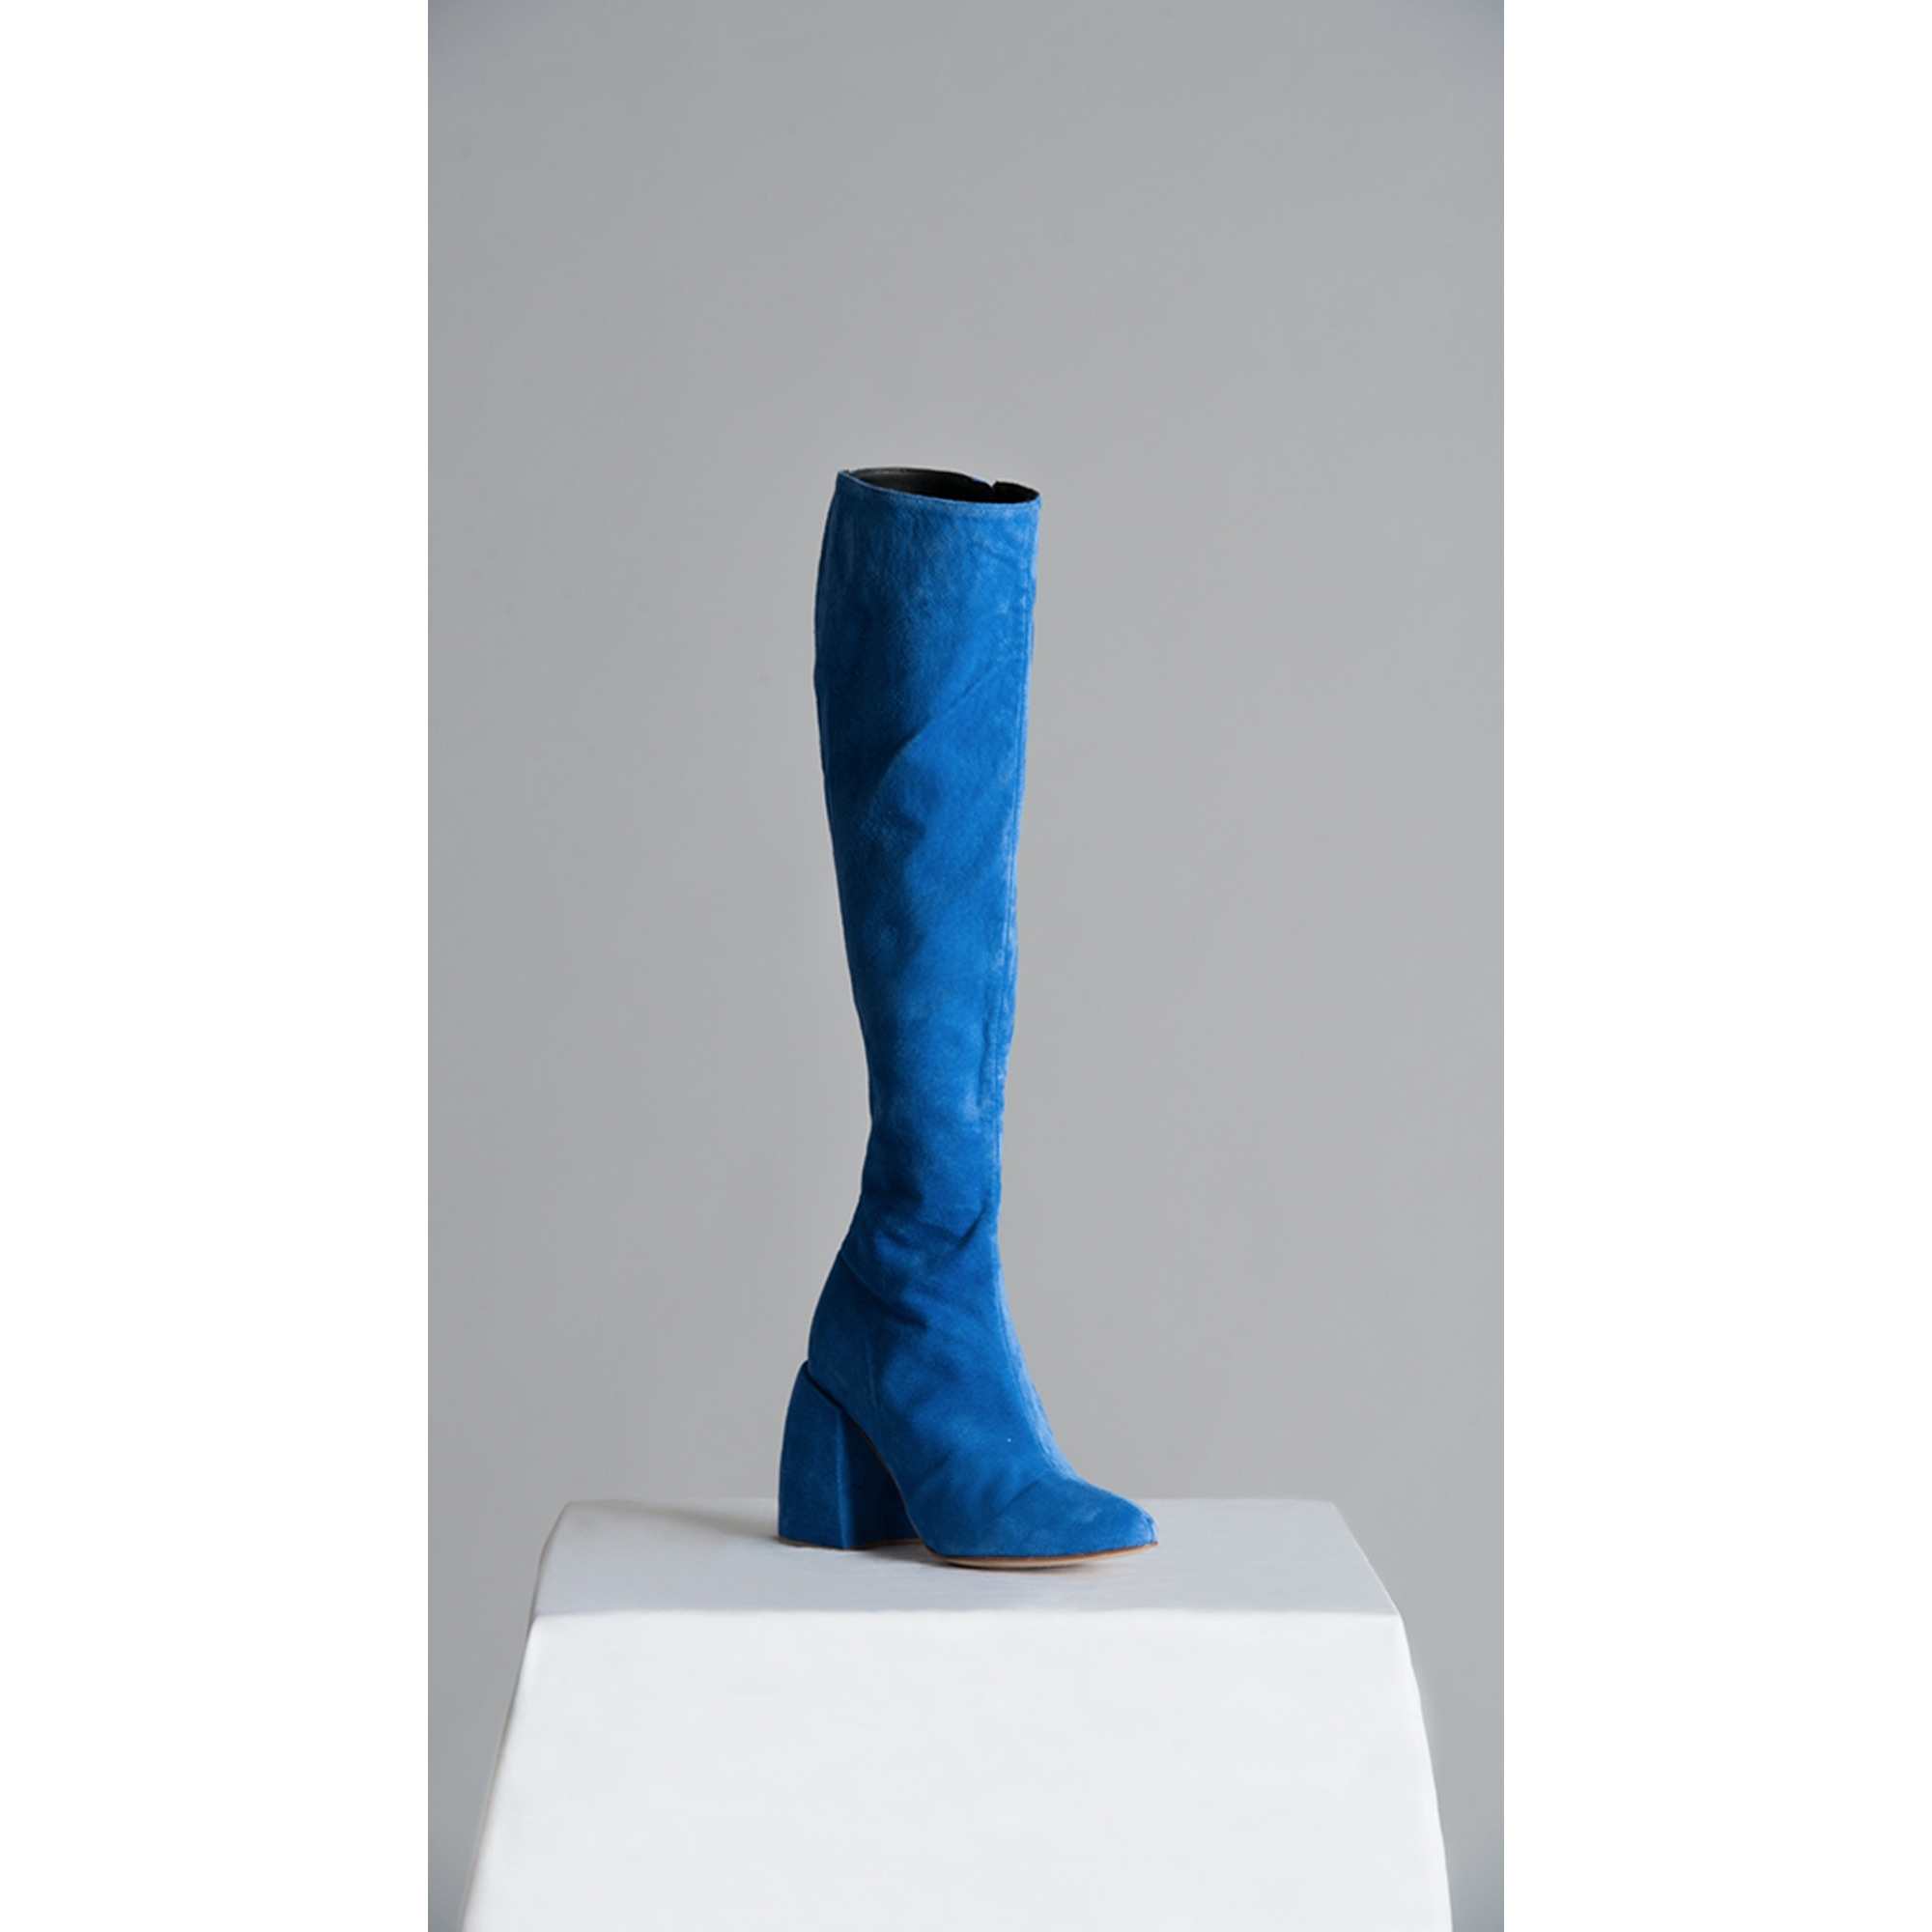 a6a4888af27 VINCENT LAPP Made to Order Blue Knee-high Suede Boots with ...